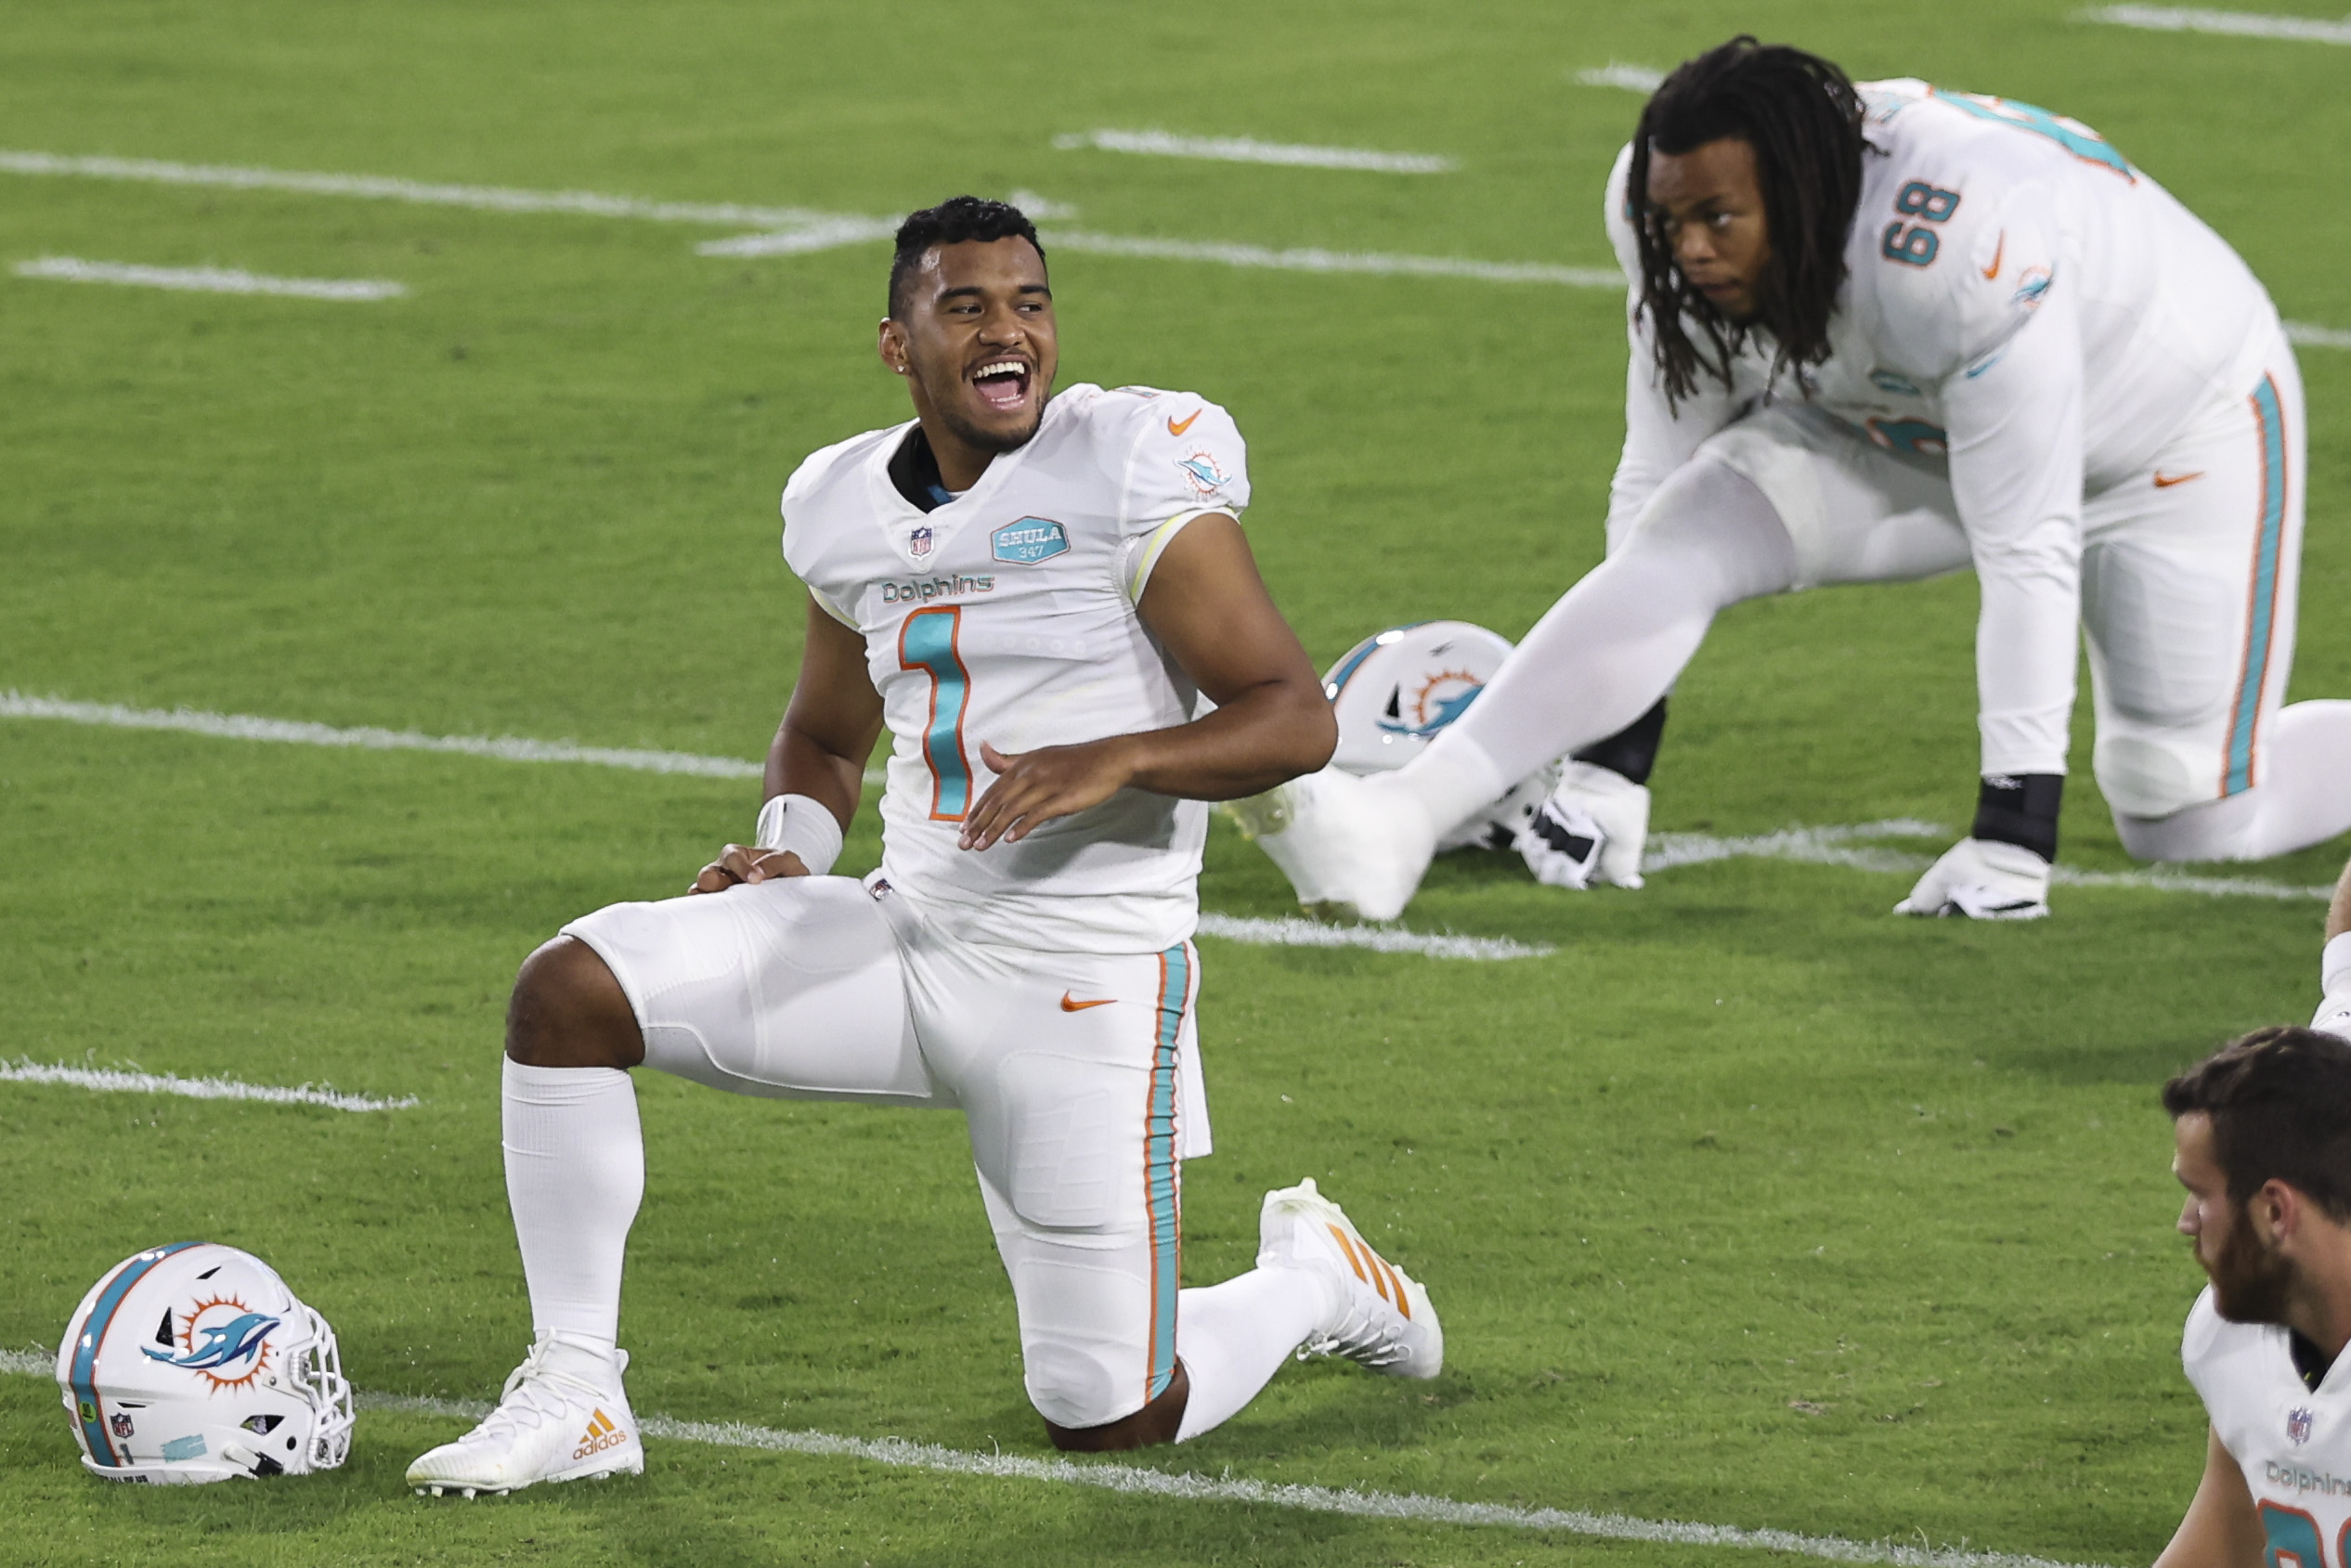 The Dolphins are being ver patient with Tua Tagovailoa.